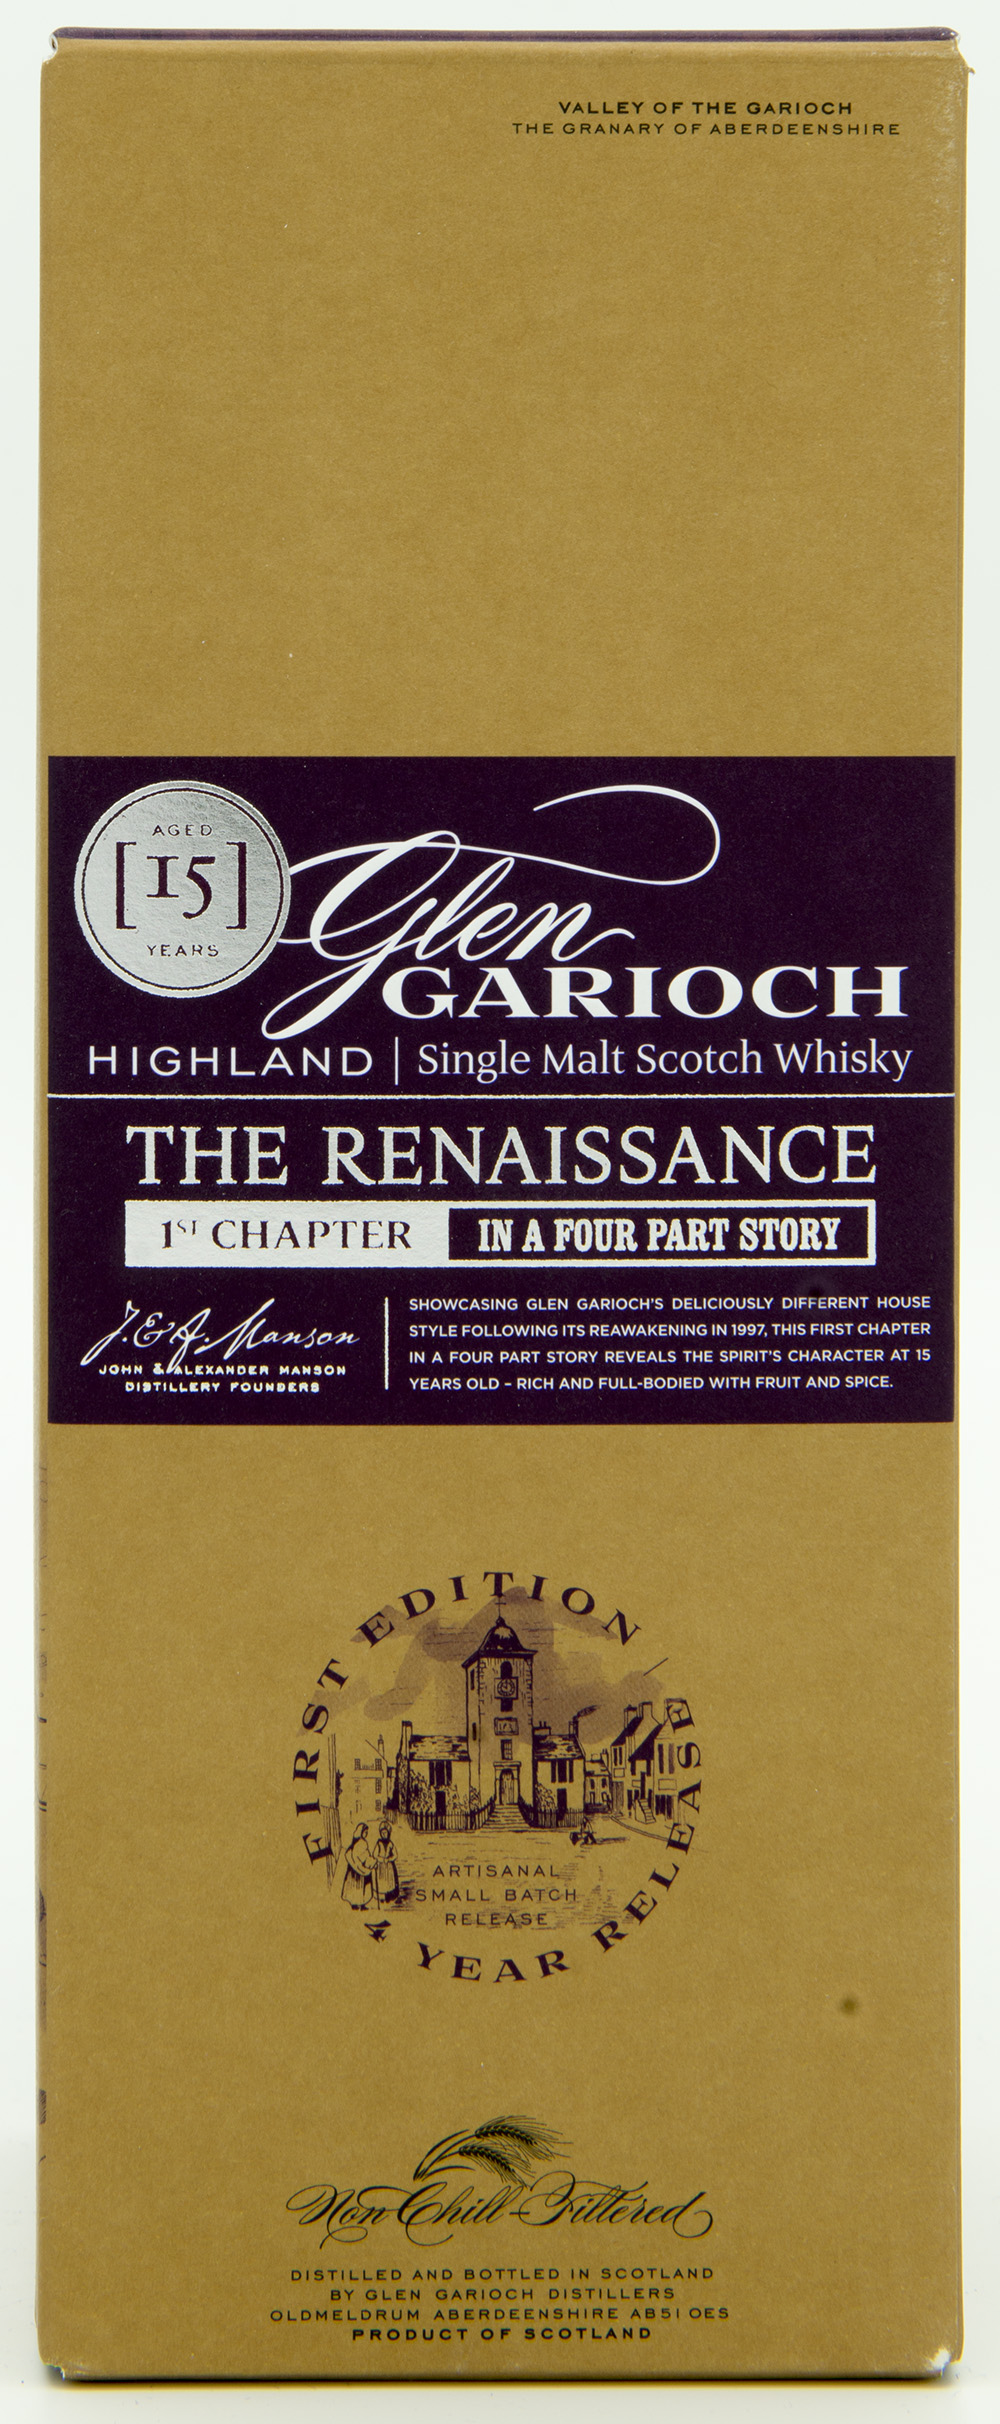 Billede: DSC_6553 Glen Garioch 15 - The Renaissance 1st chapter - Box front.jpg